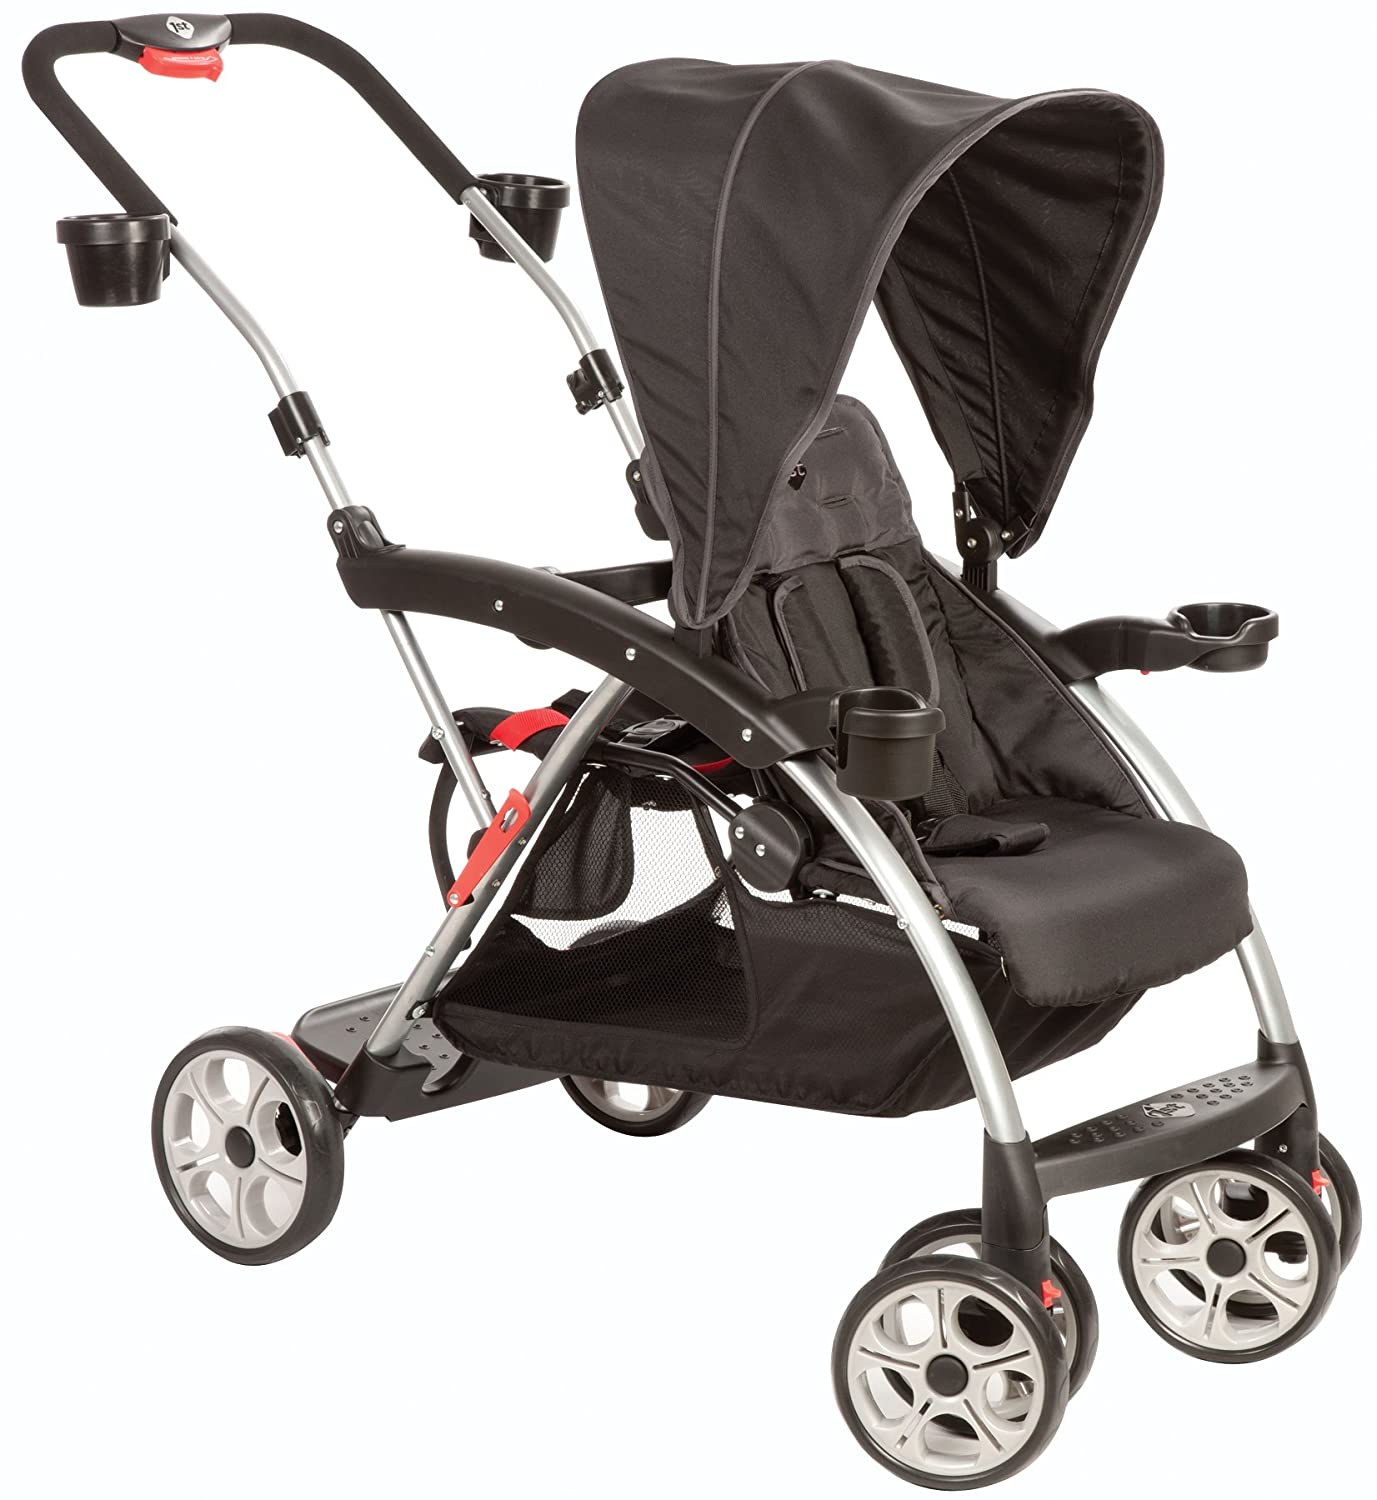 Amazon.com : Safety 1st Stand on Board, Classic Black : Standard ...